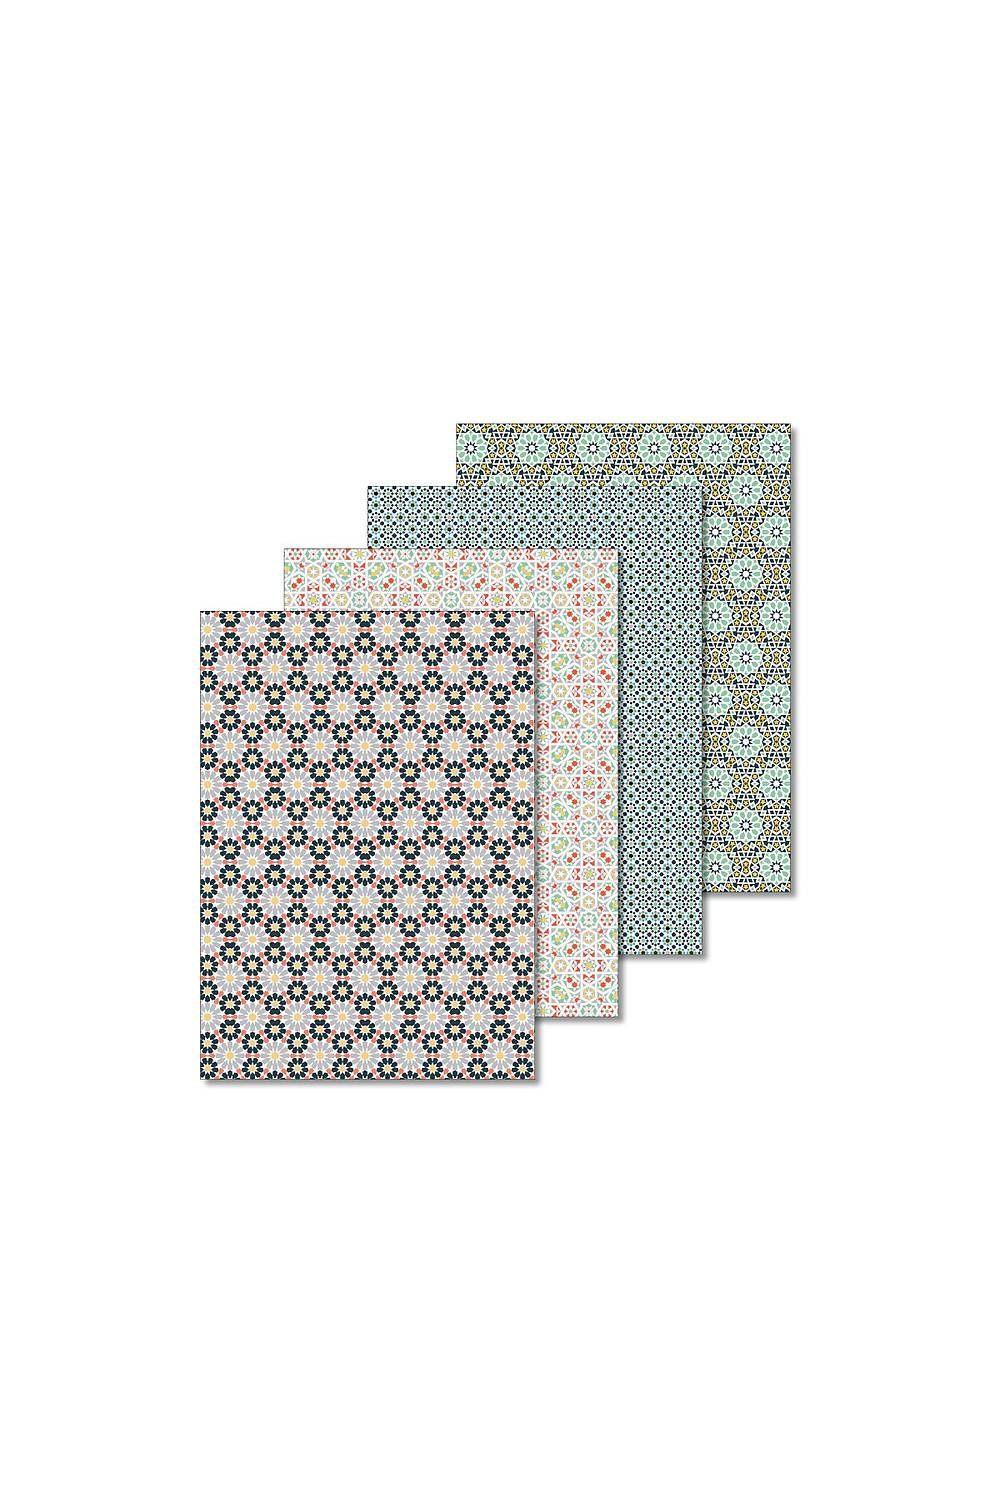 Letter Writing Set - Arabian - Briefpapierset